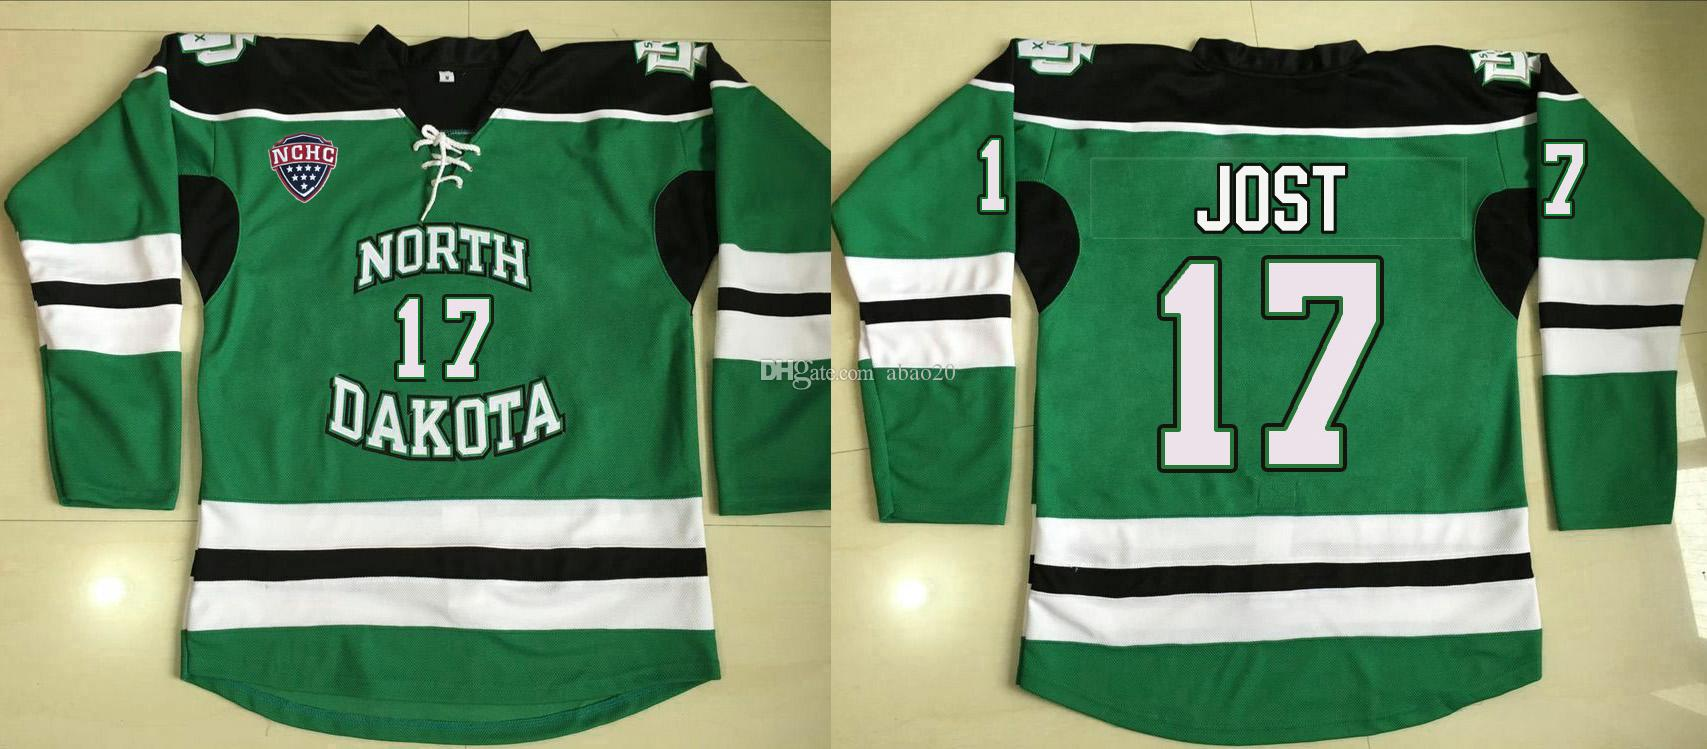 2019 University Of North Dakota Fighting Sioux  17 Tyson Jost Green Hockey  Jersey Embroidery Stitched Customize Any Number And Name Jerseys From  Abao20 5e8fce76f